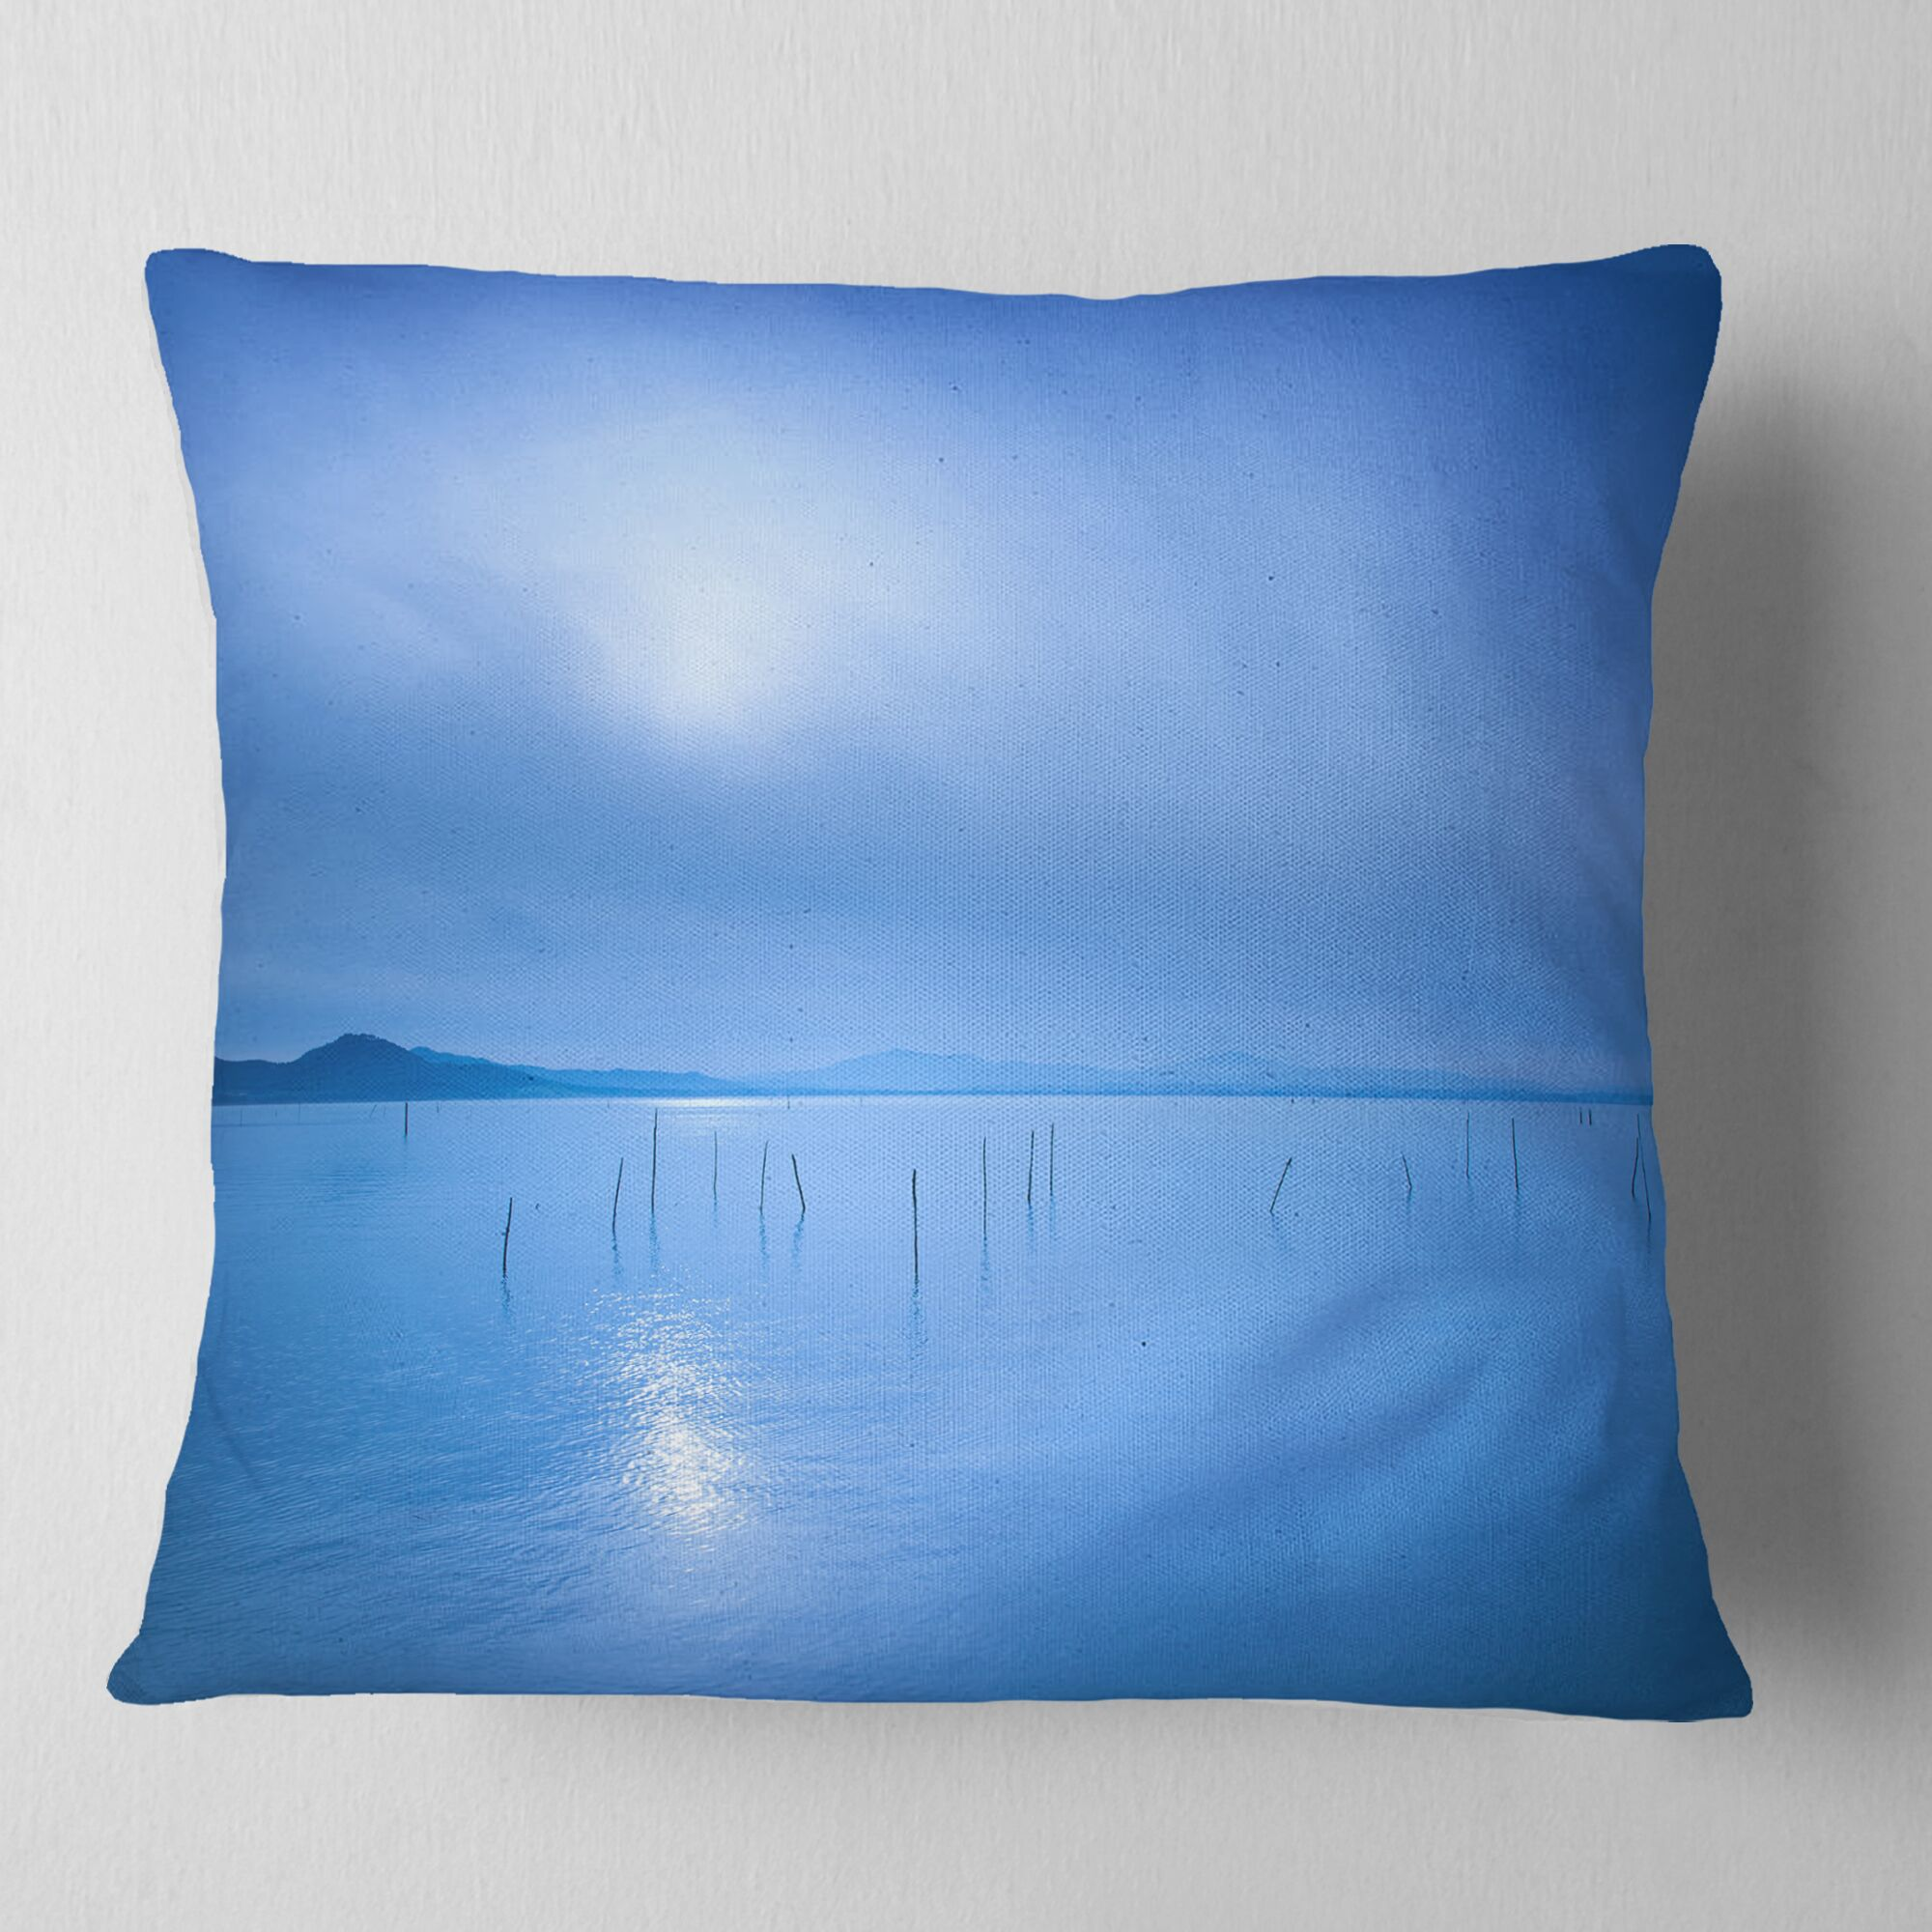 Seascape Water Surface in the Morning Pillow Size: 18